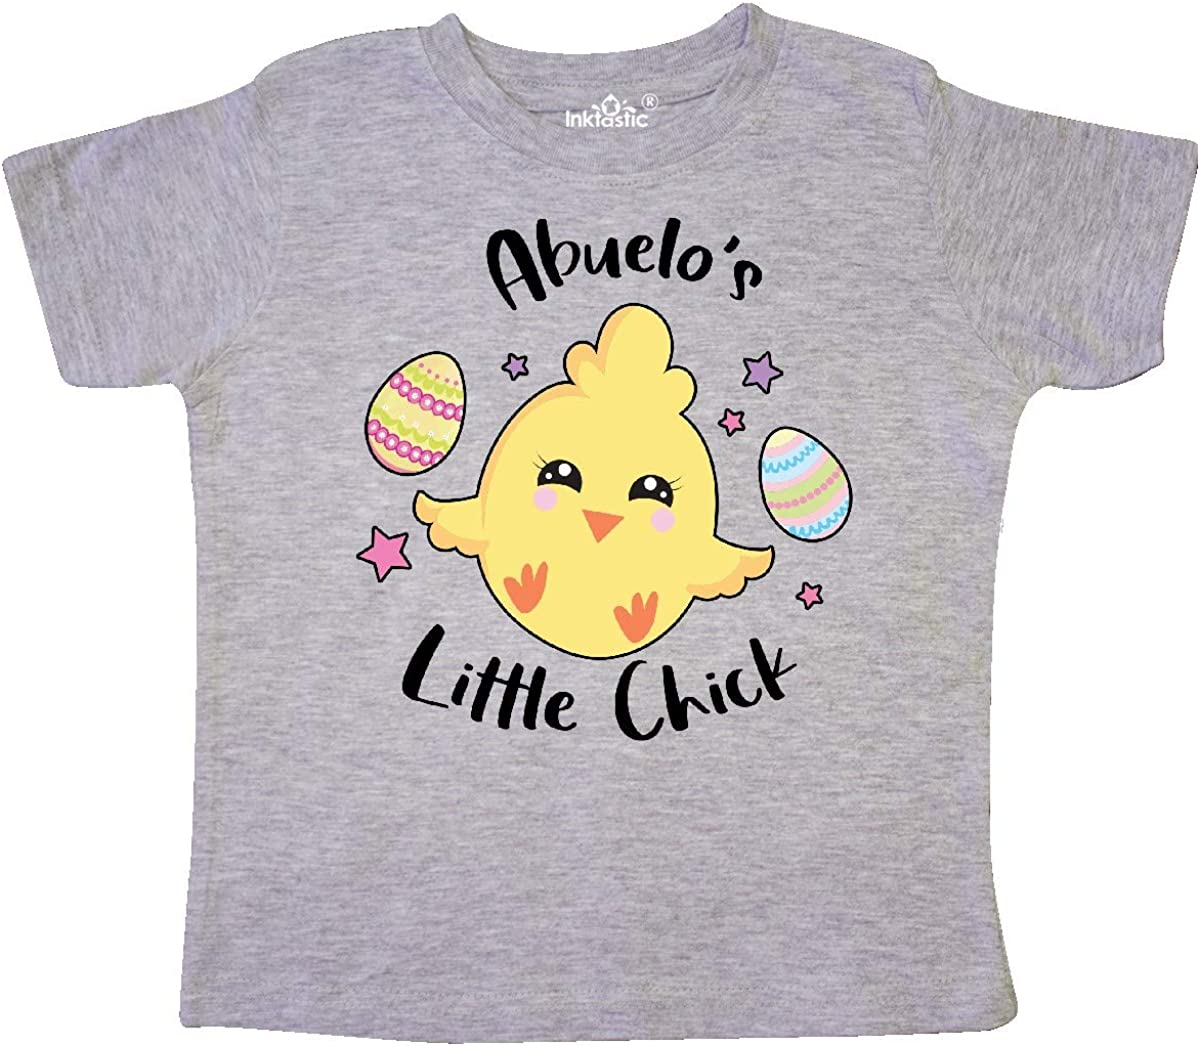 inktastic Happy Easter Abuelos Little Chick Toddler T-Shirt